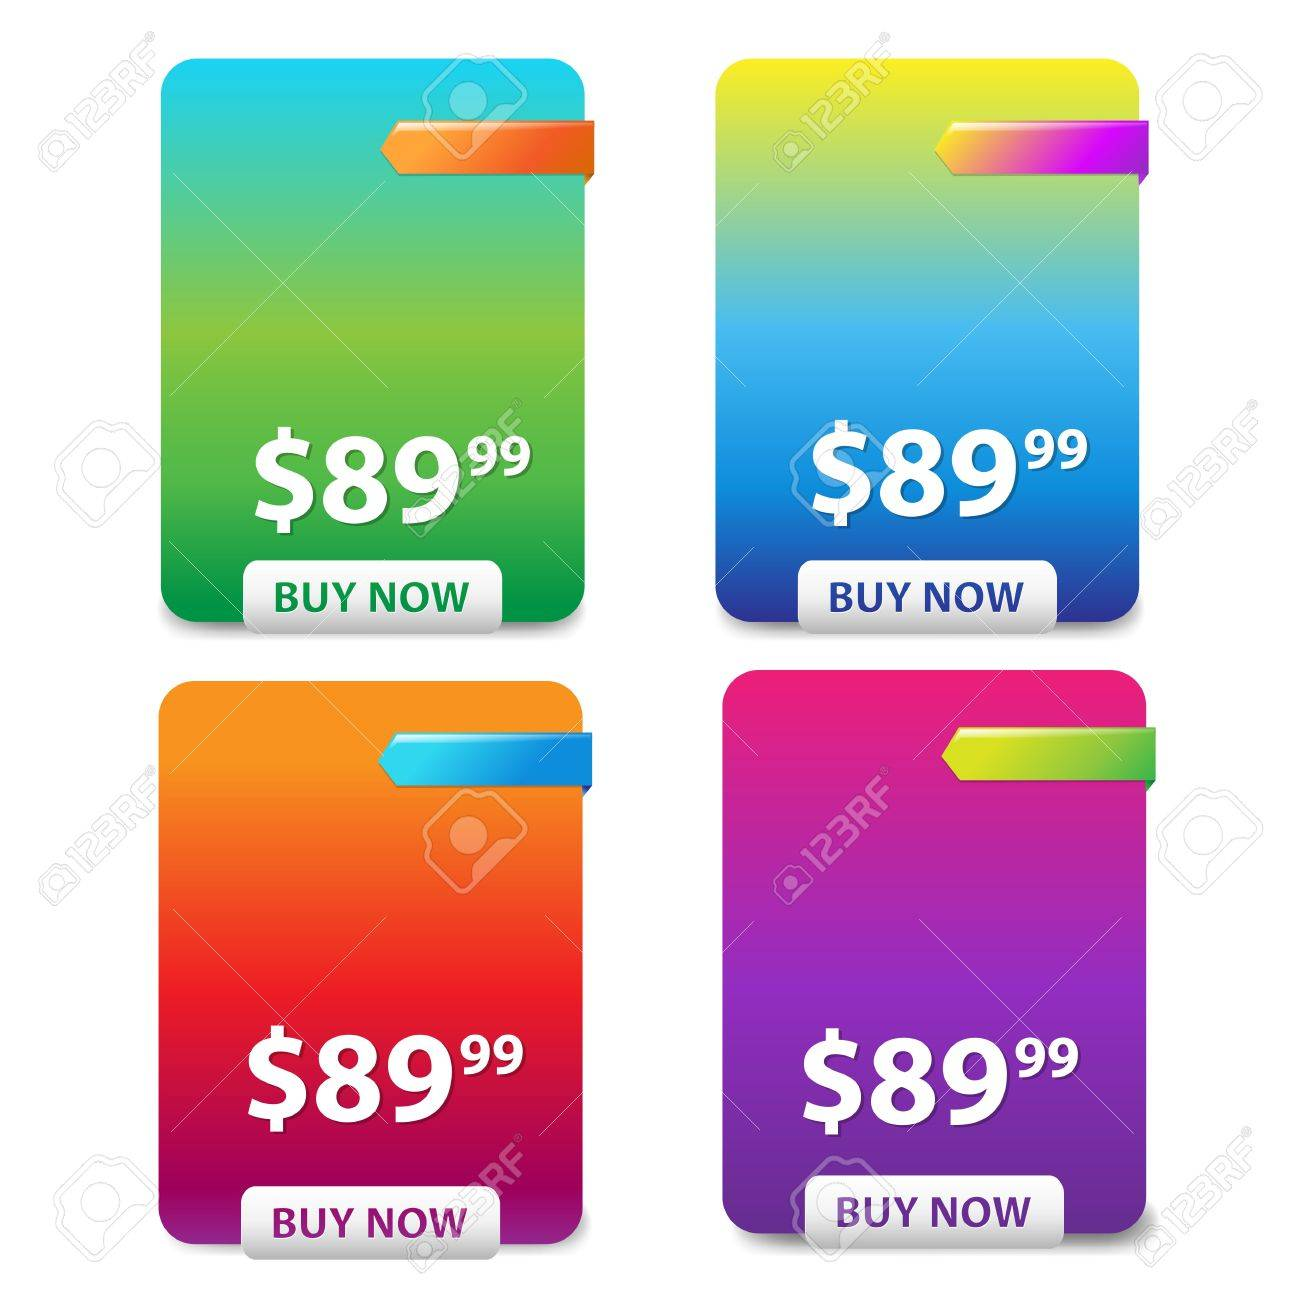 4 Color Price Table, Isolated On White Background, Vector Illustration Stock Vector - 17910681